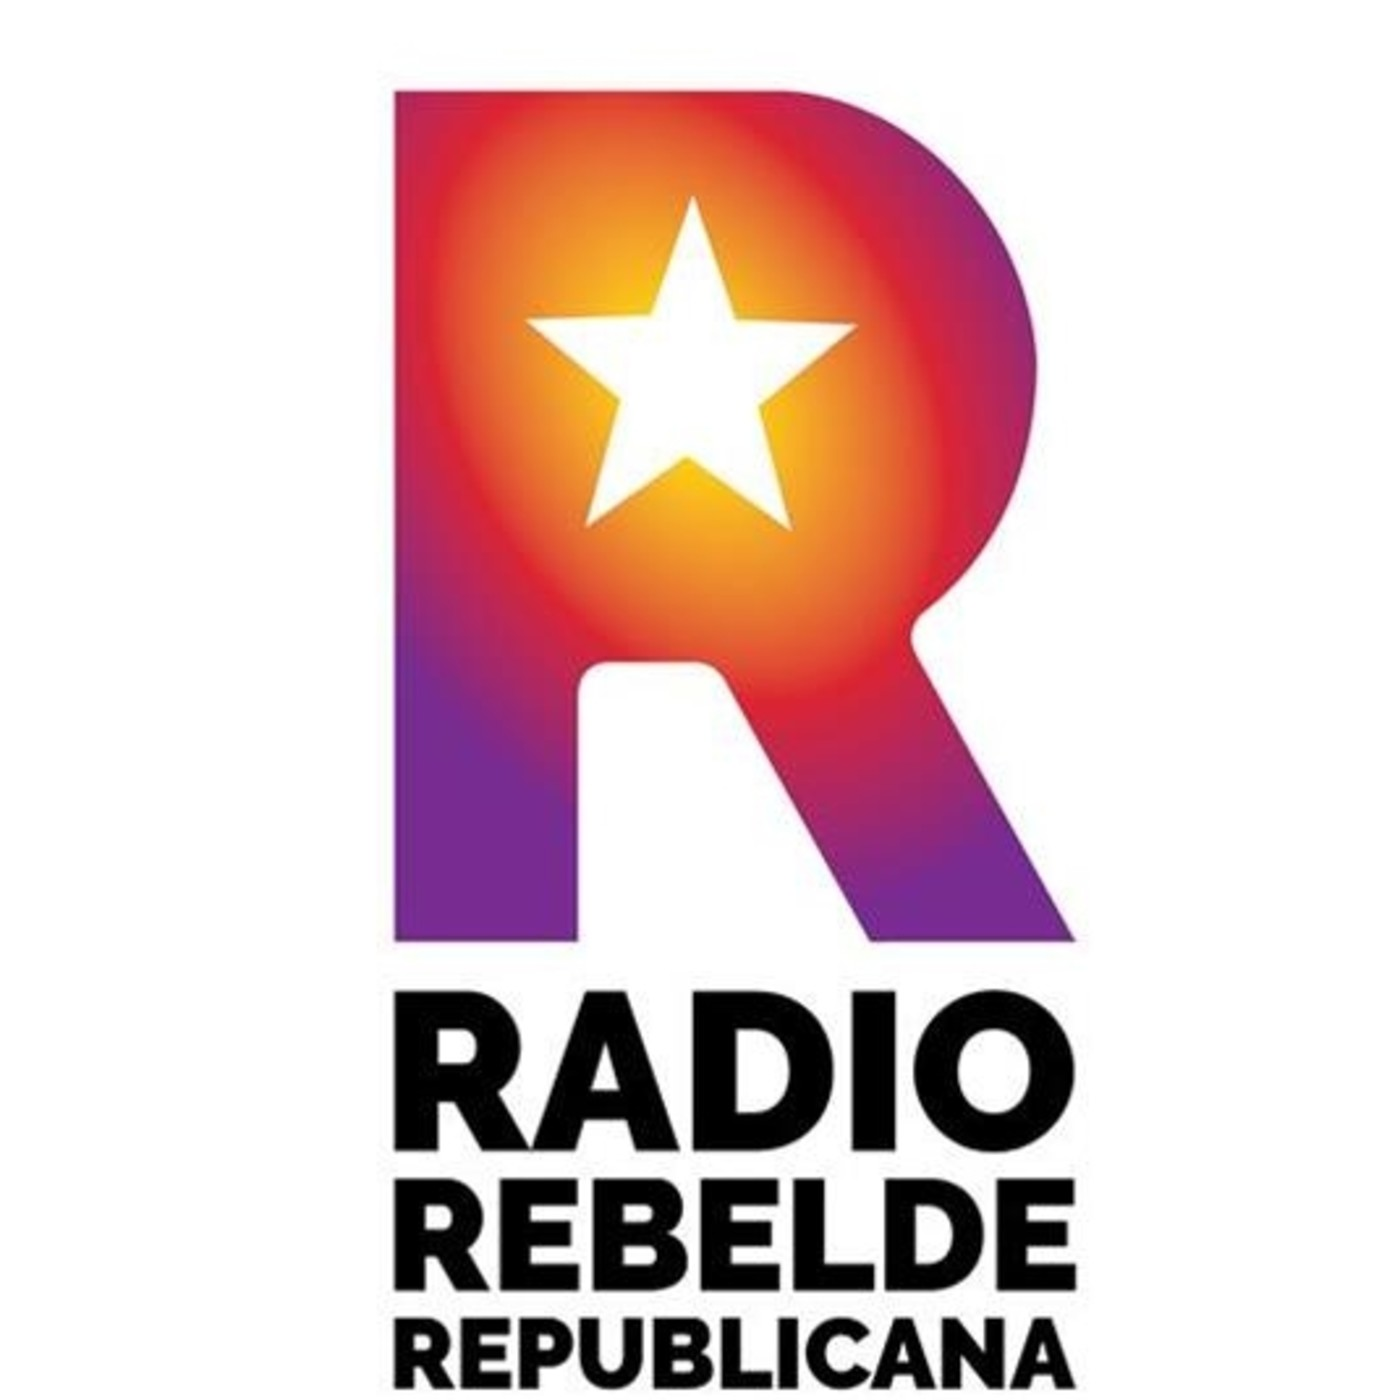 Radio Rebelde Republicana